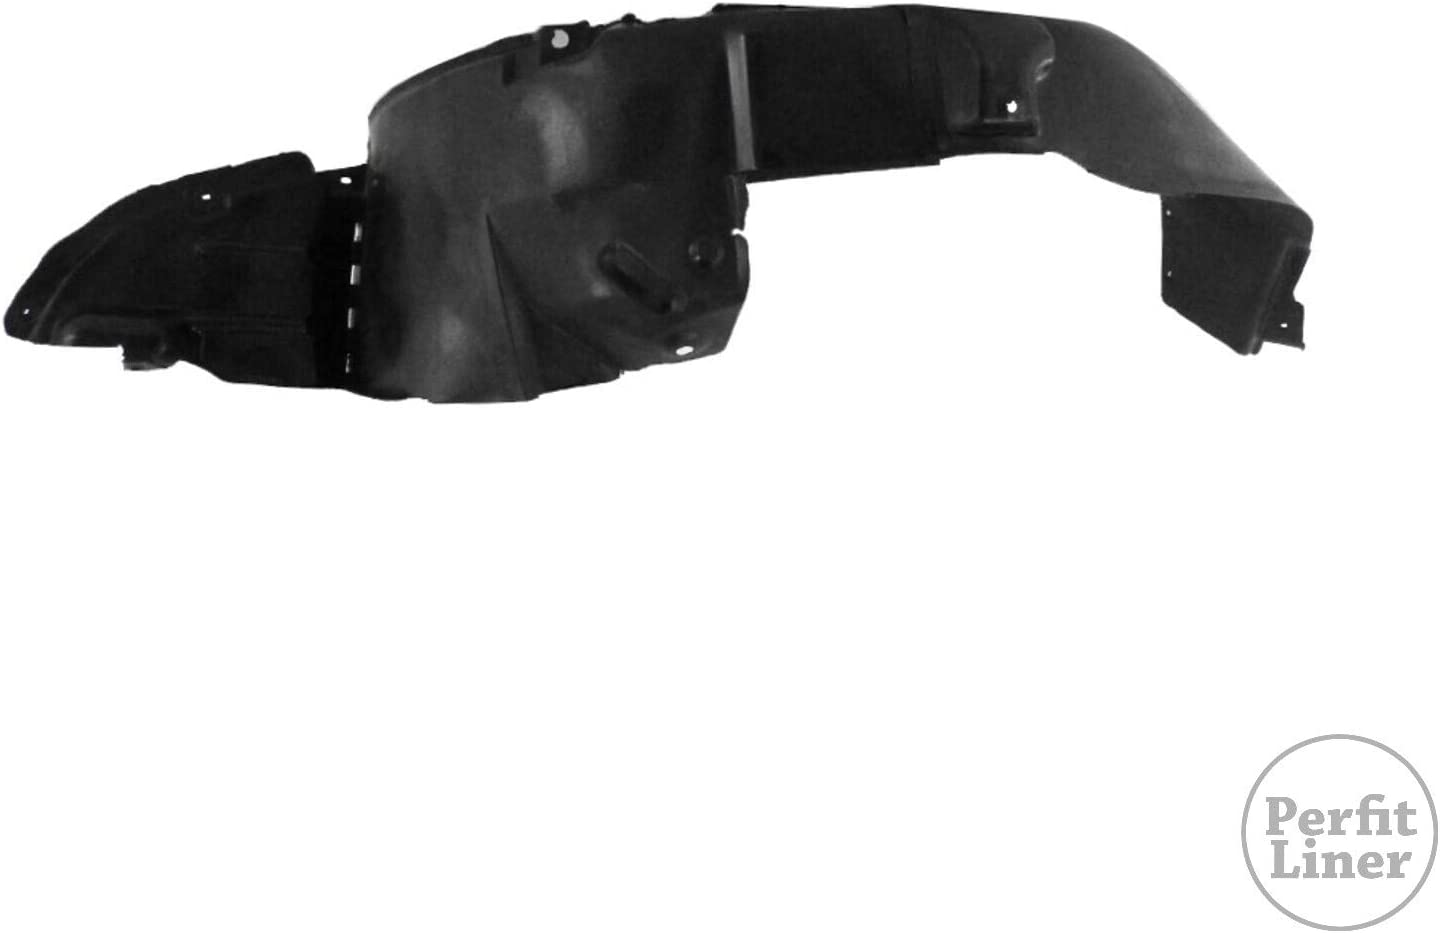 Perfit Liner New Replacement Direct stock discount Parts Right Selling Passenger Fe Front Side